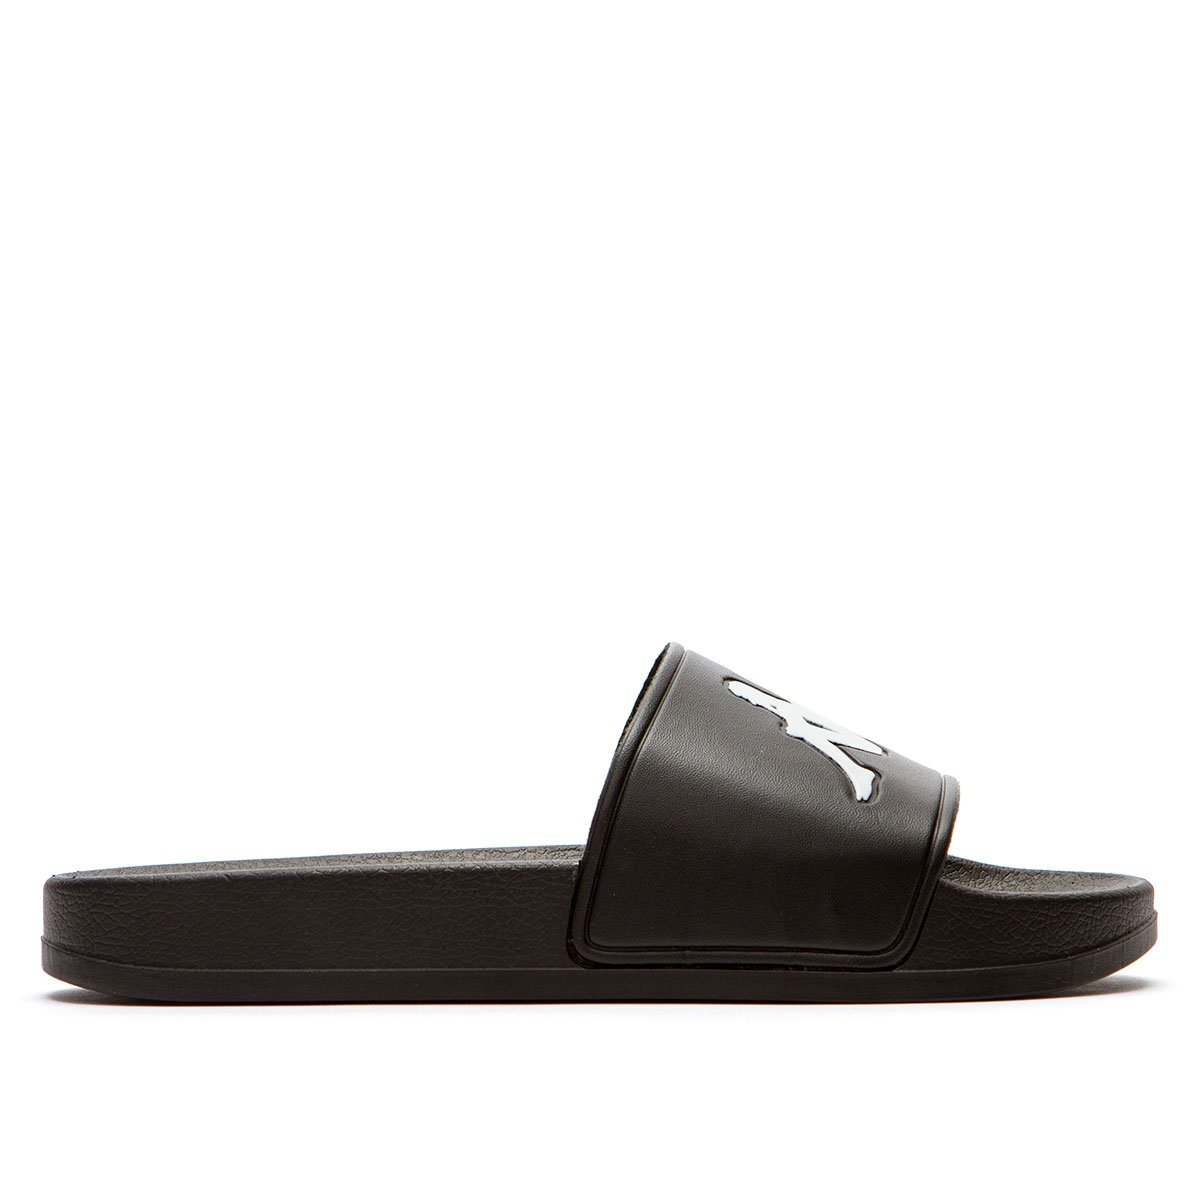 Kappa Adam Slide Sandals